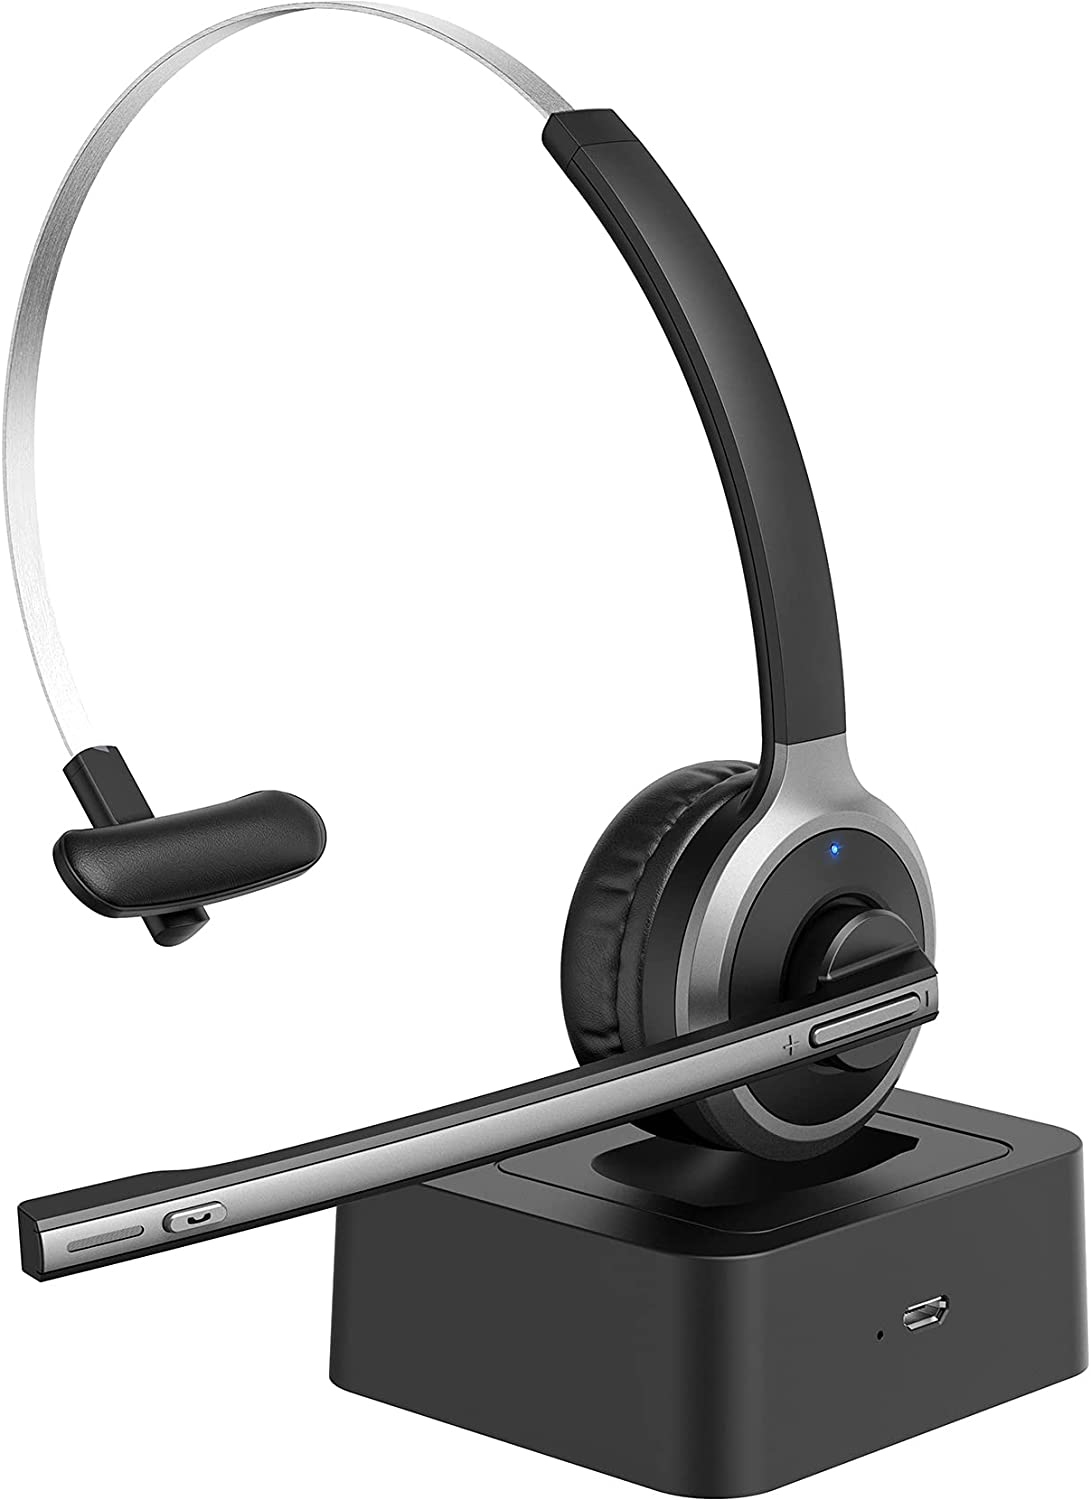 Wireless Headset with Microphone Noise Canceling, Lightweight Wireless Headphones for Computer, On-Ear Office Headset for Online Meeting, Business, K12 Classroom, Work from Home